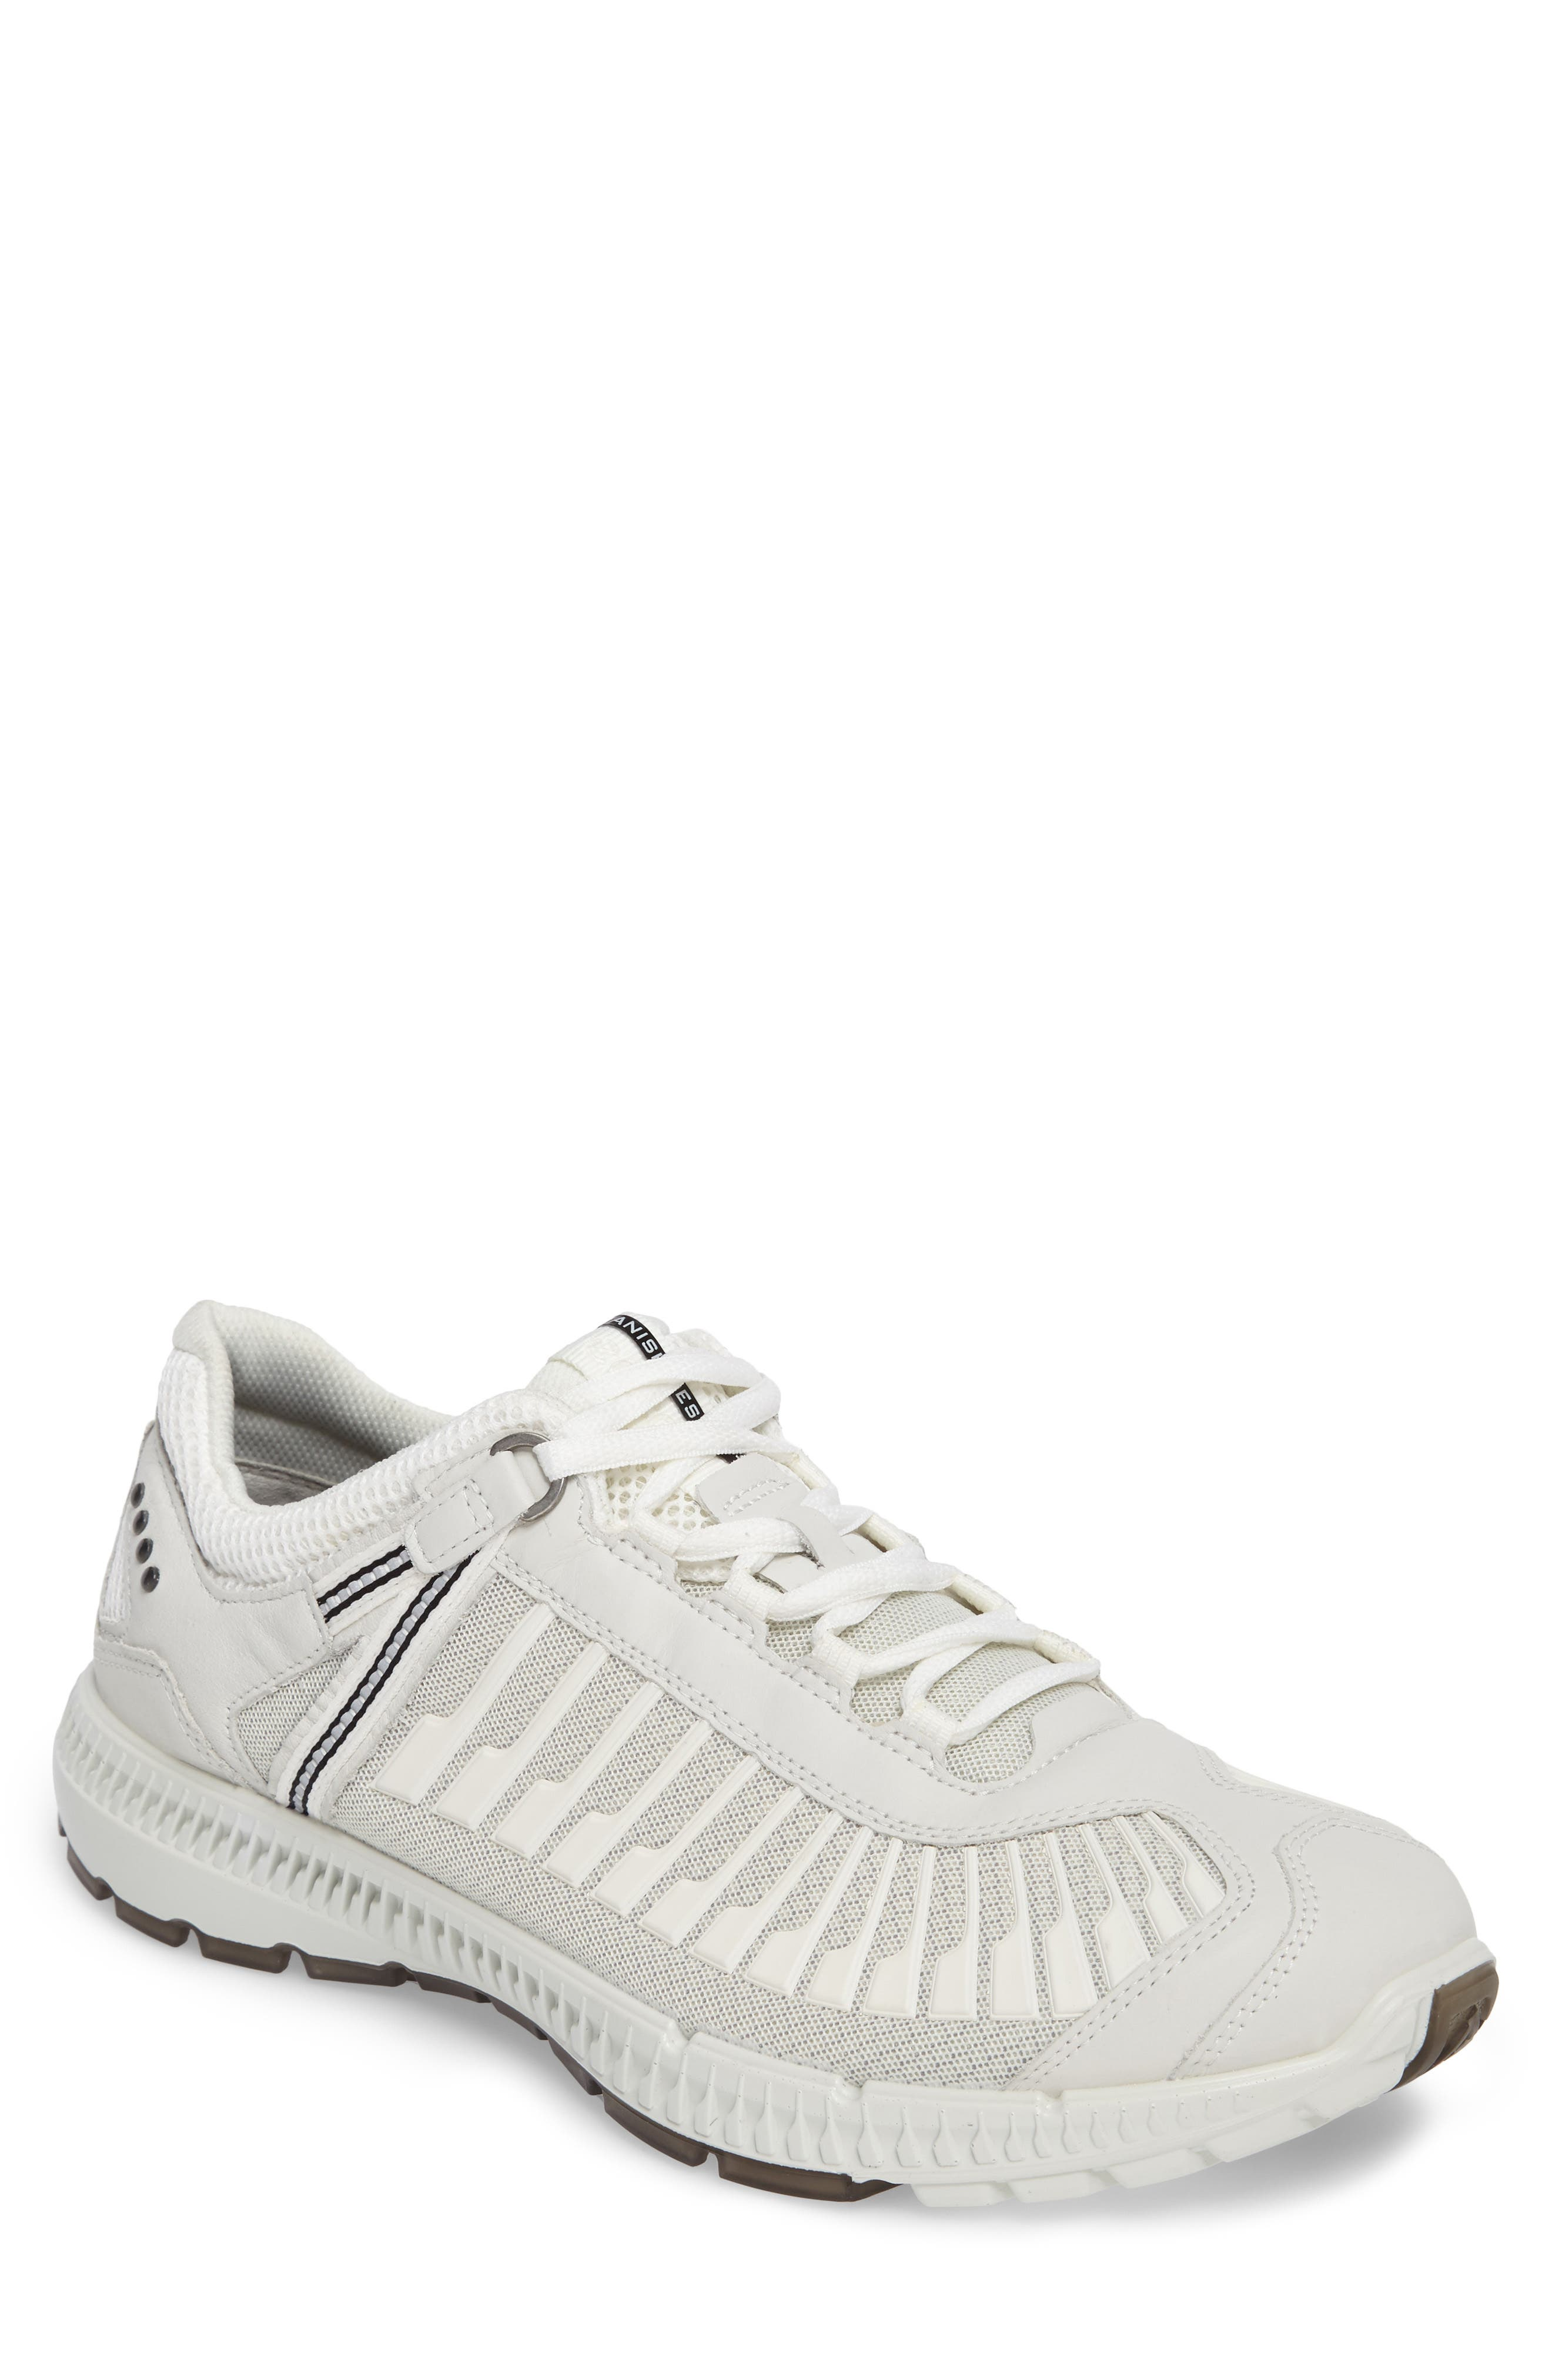 Intrinsic TR Run Sneaker,                             Main thumbnail 1, color,                             White Leather